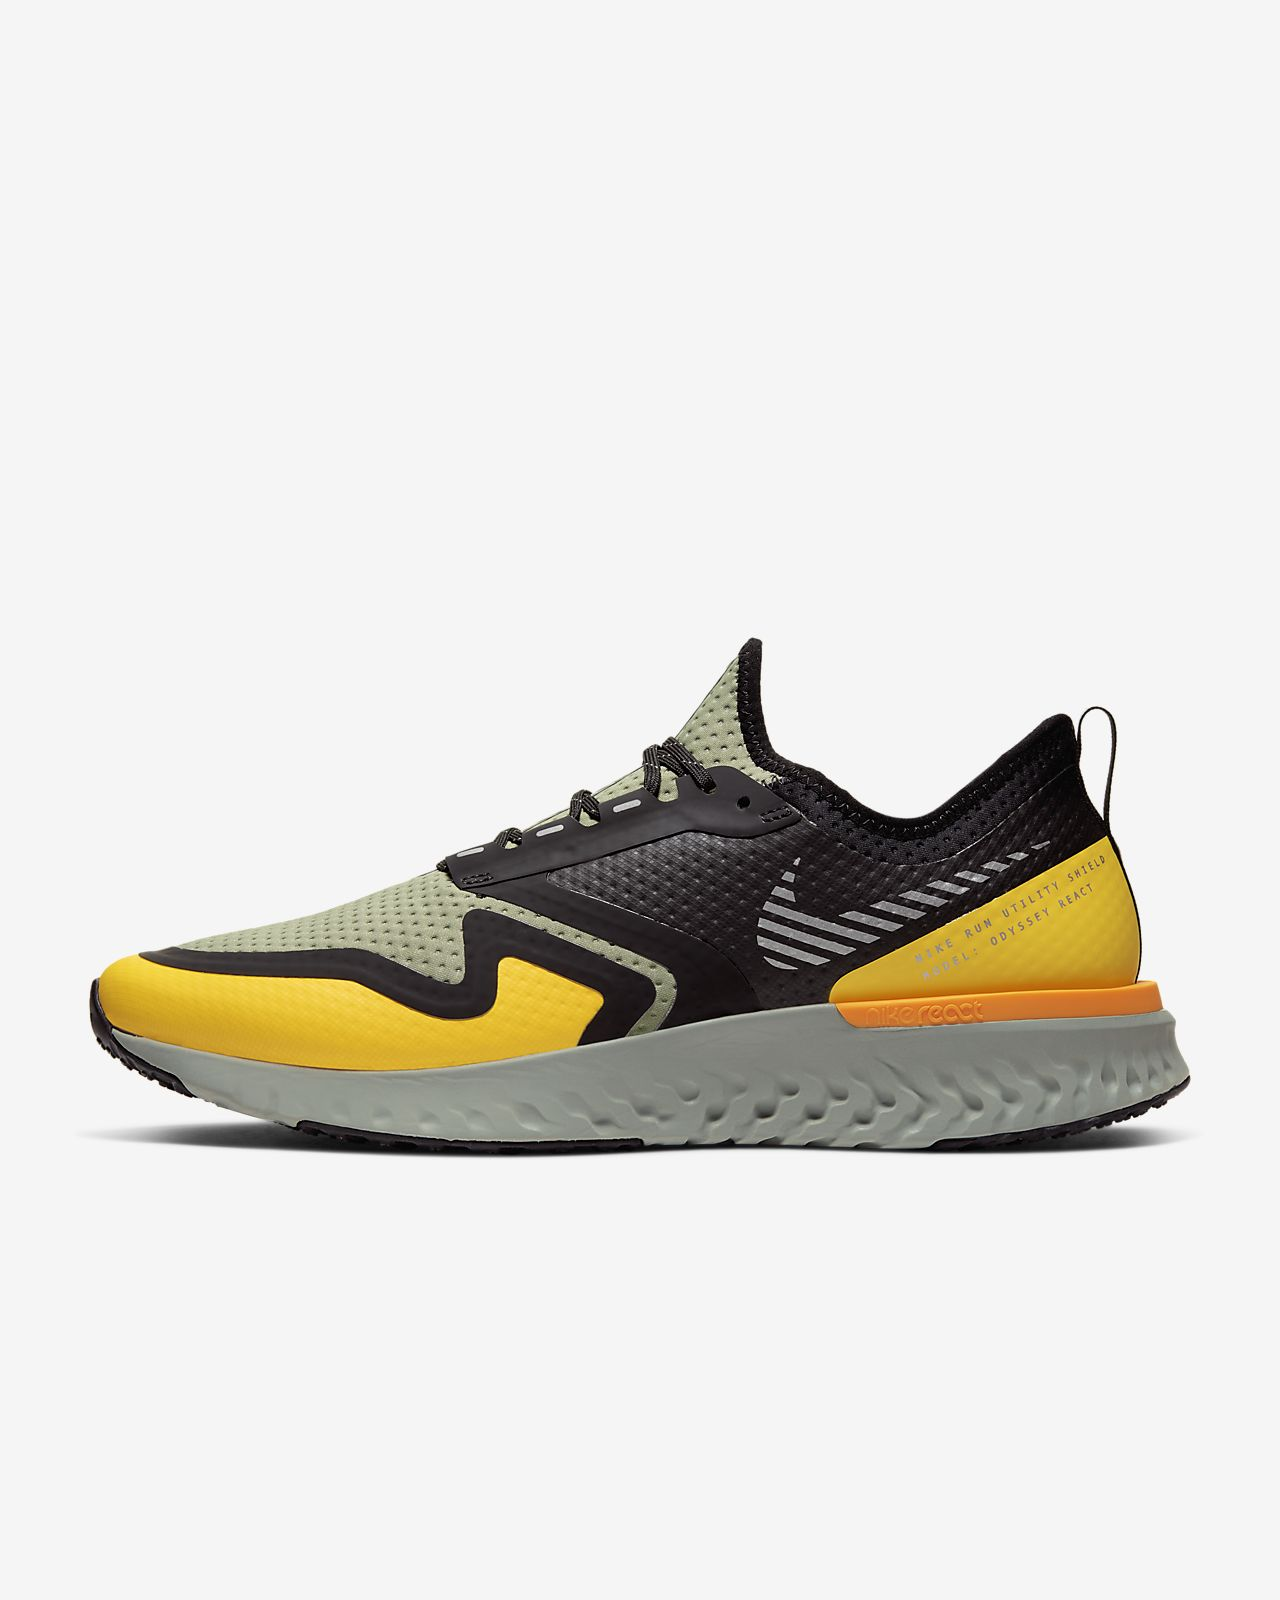 Nike Odyssey React 2 Shield 男子跑步鞋